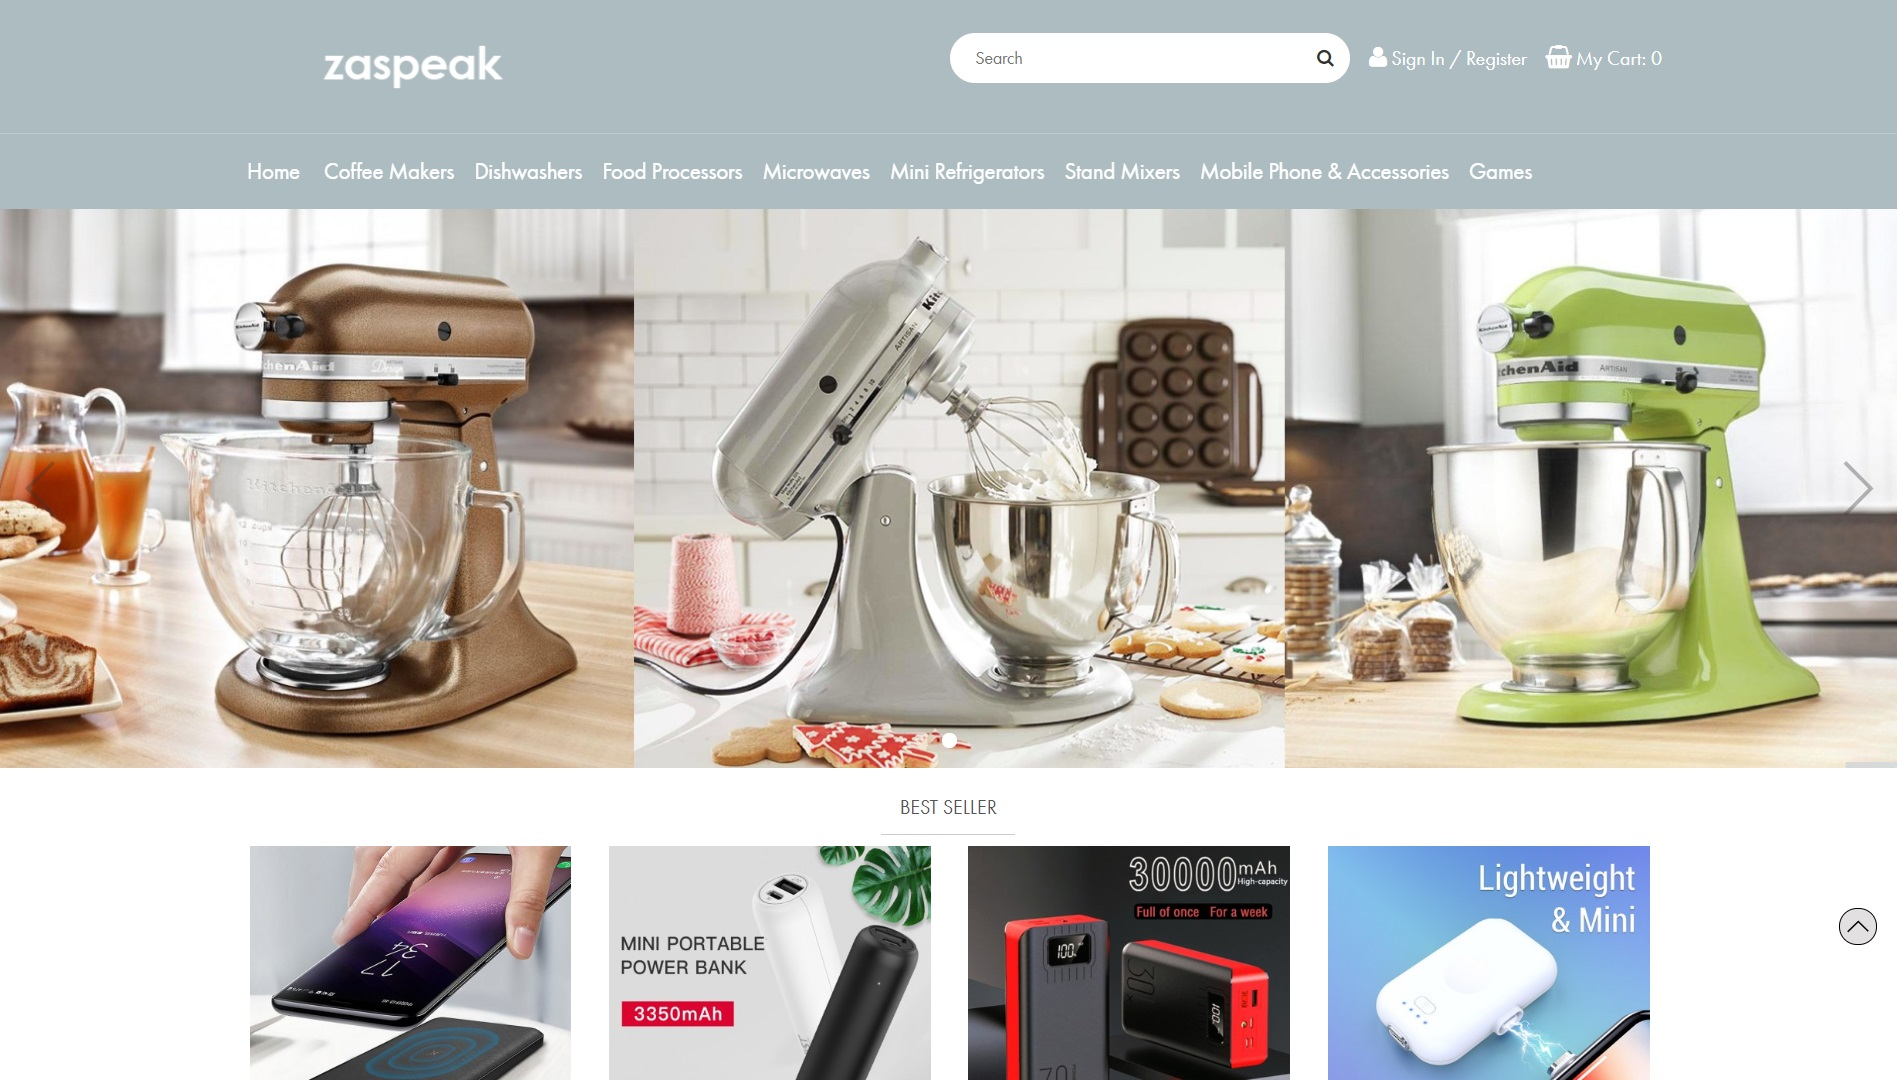 Is Zaspeak a Scam? See the Review of the Online Store